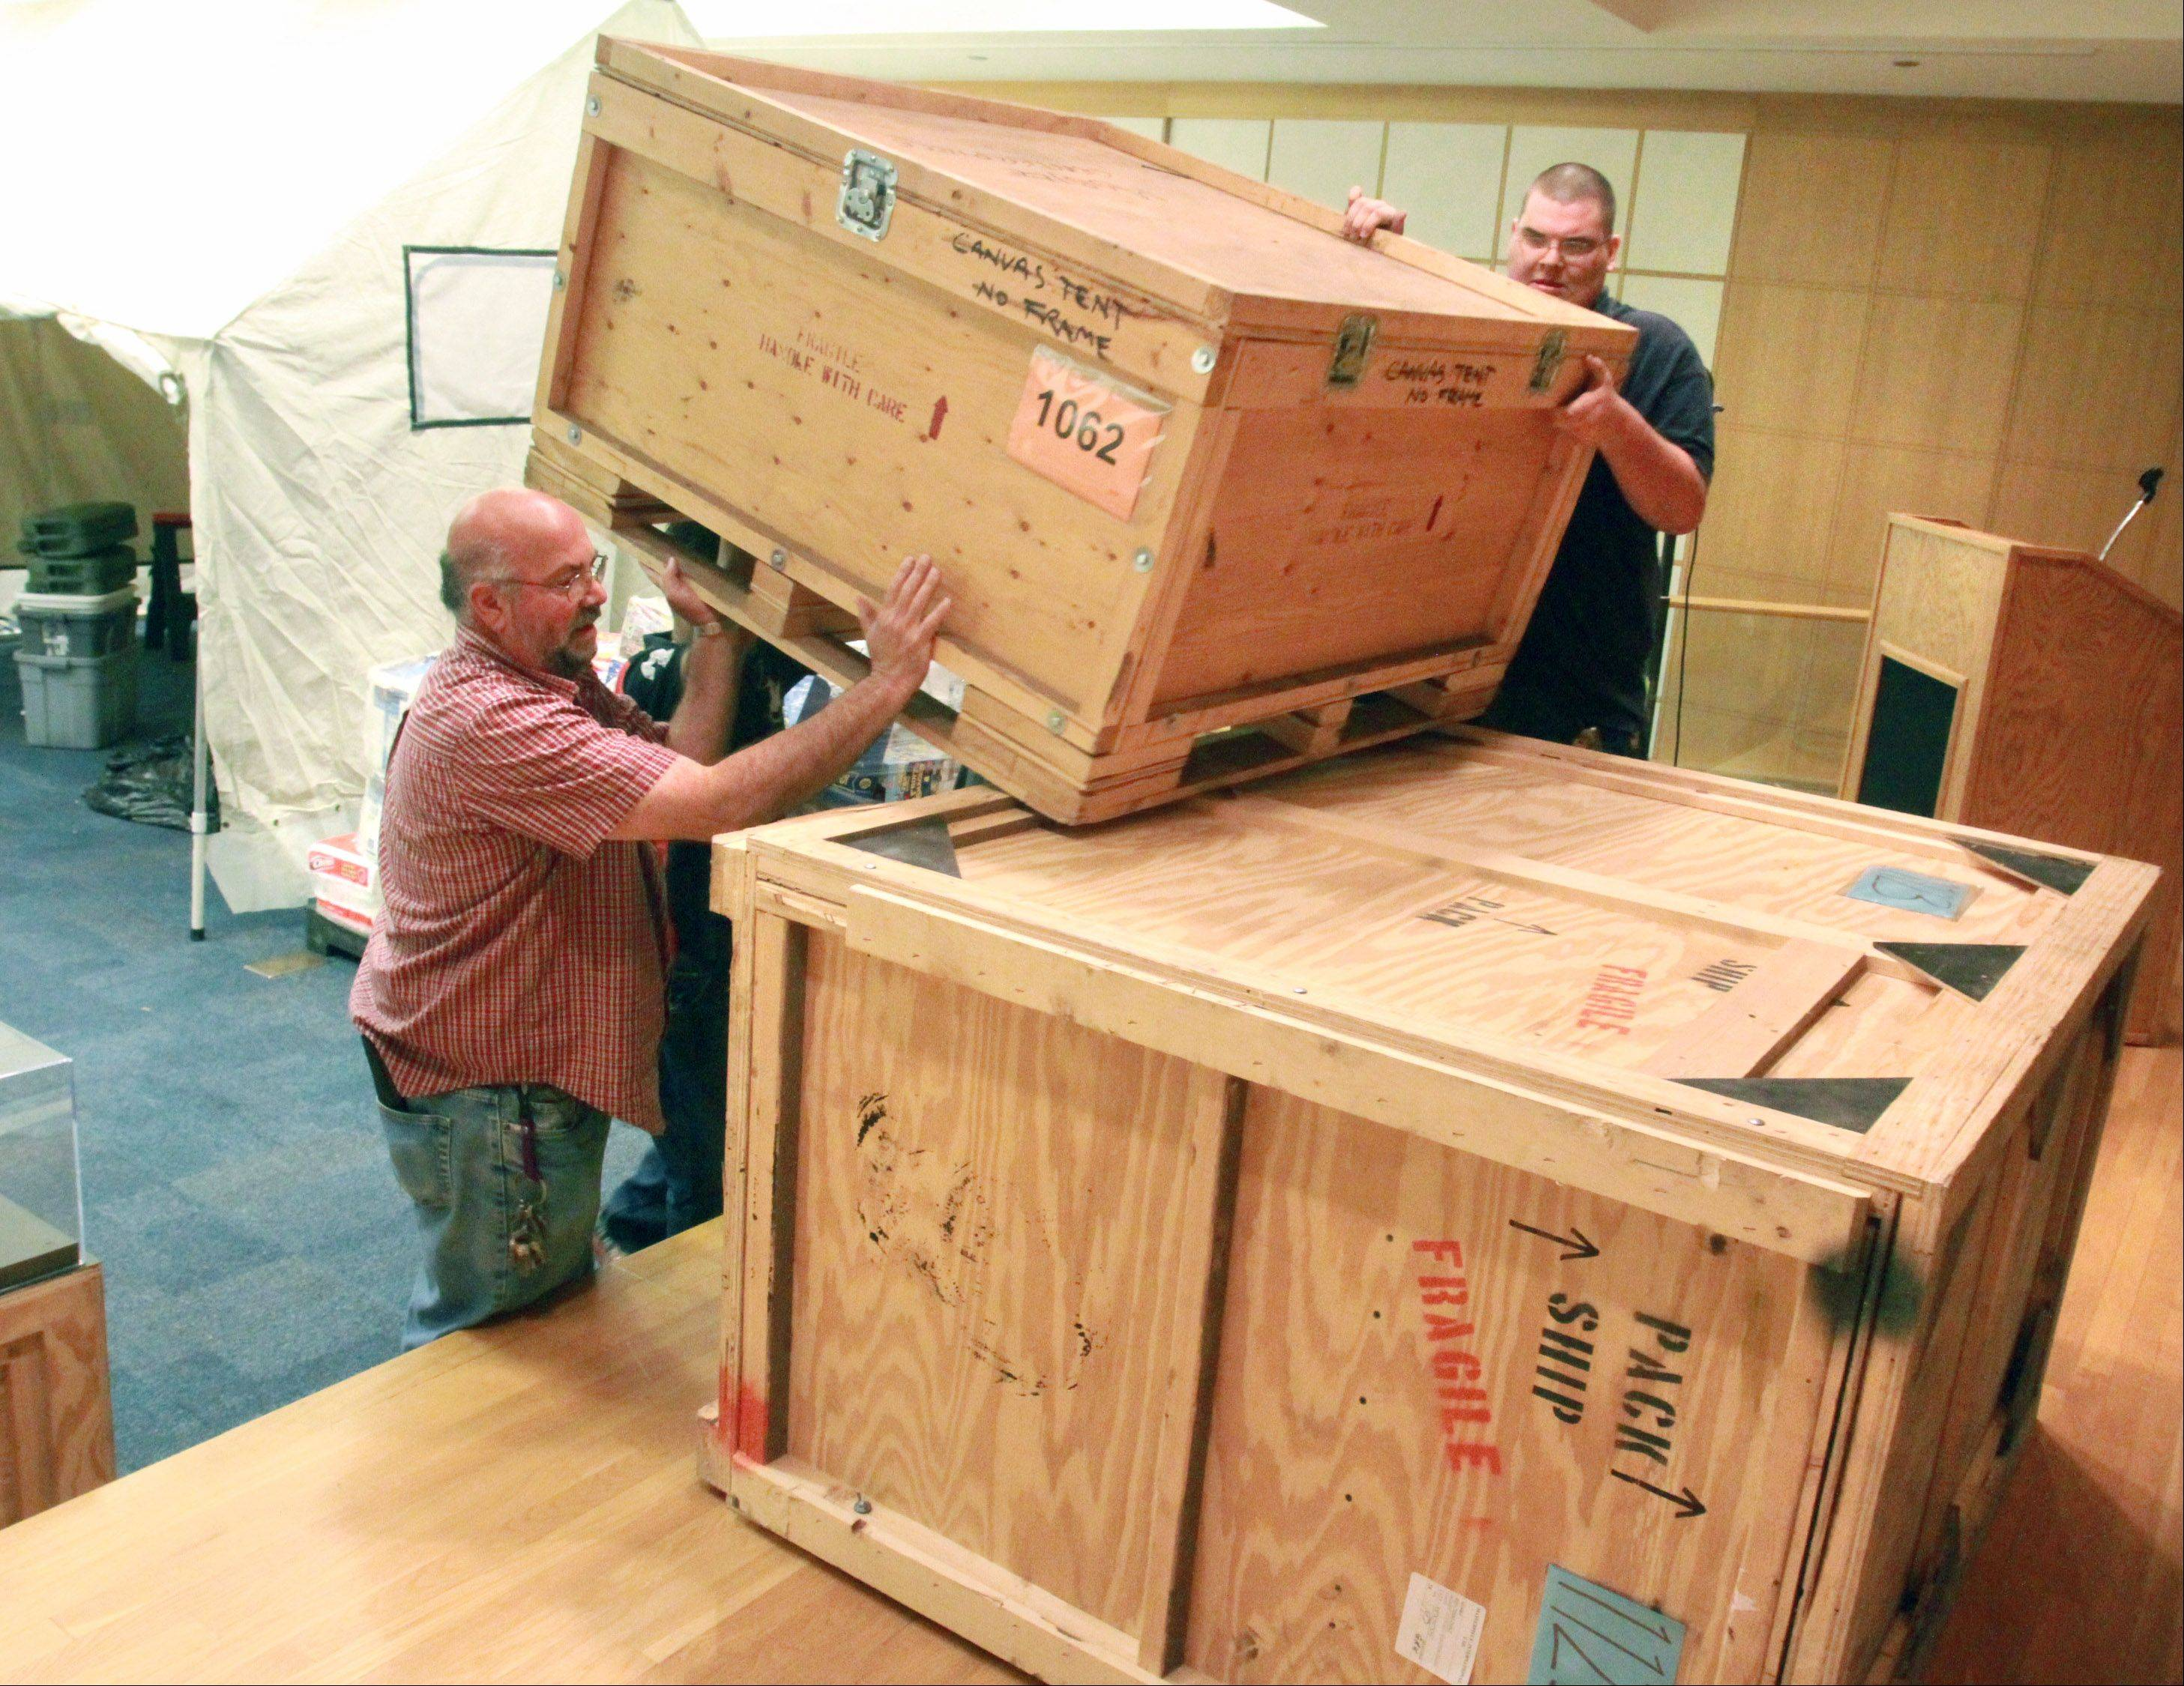 Tom Scuderi, left, and Bill Benne with the Arlington Heights Library stack crates on the stage area of the exhibit.